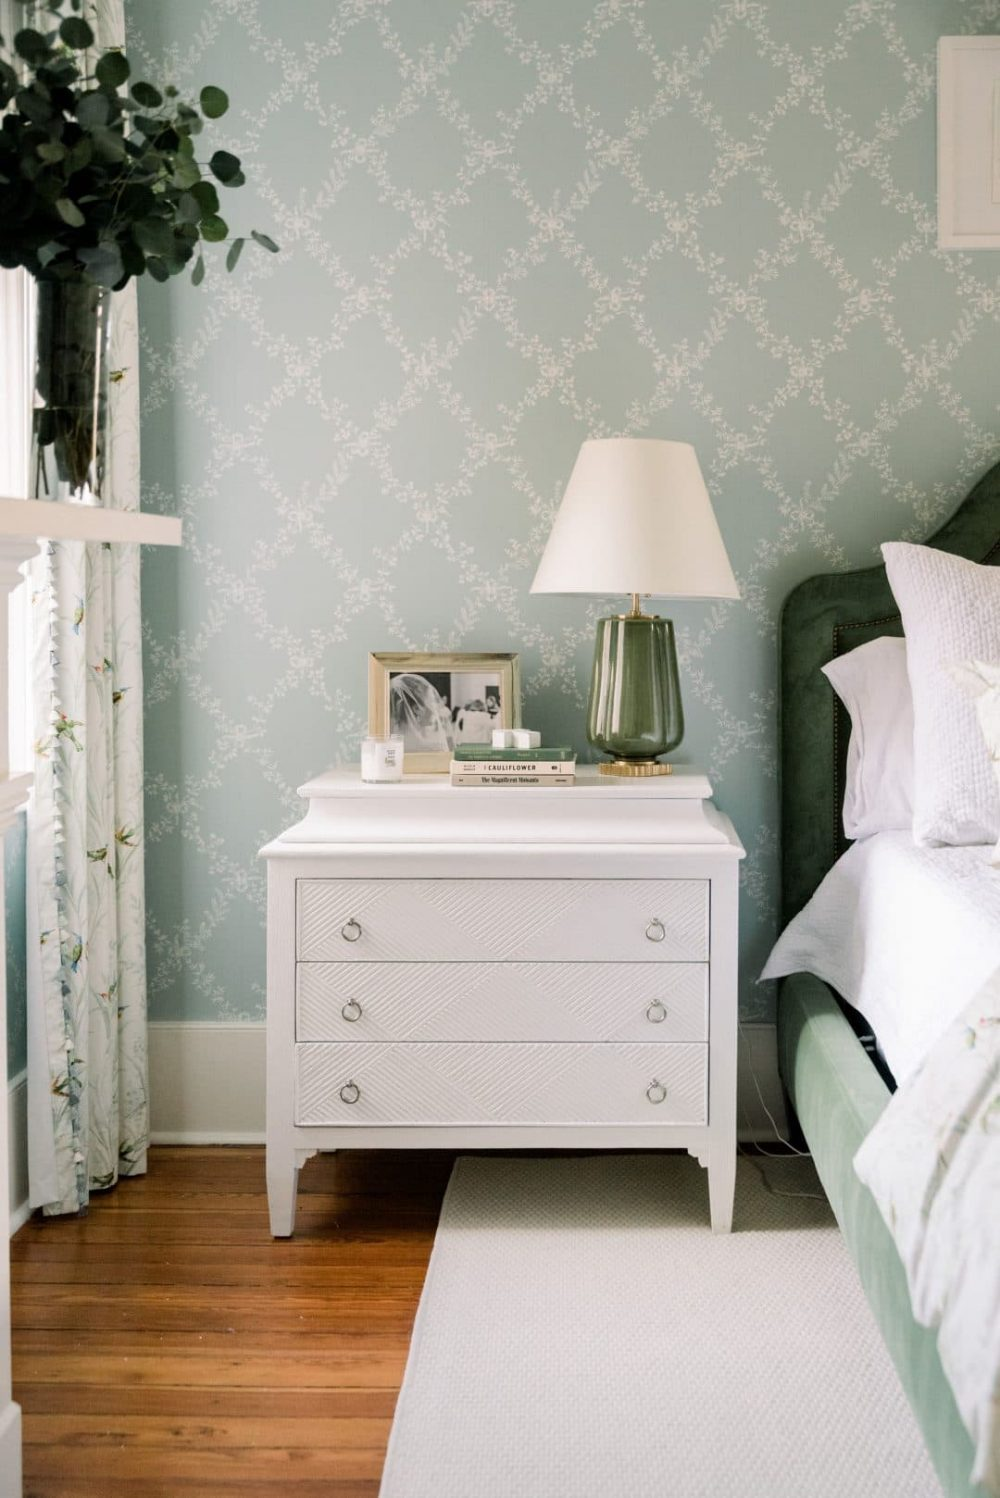 Vintage wallpaper: Every Shabby Chic inspired home needs it